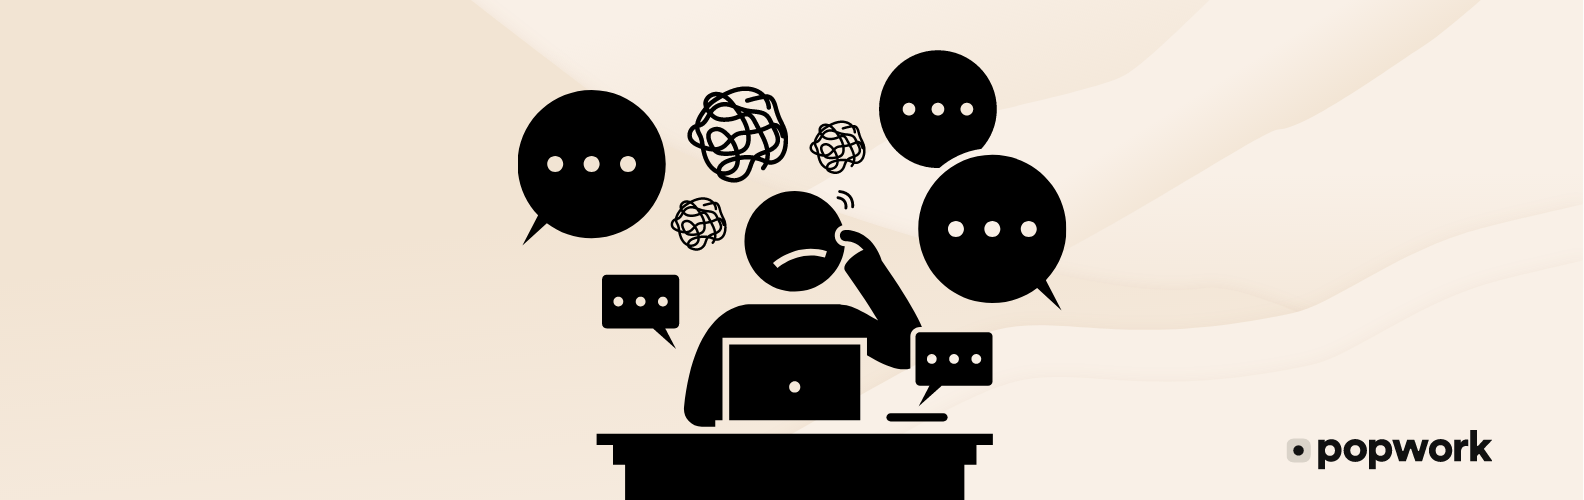 A character disturbed and stressed by a lot of notifications - Popwork